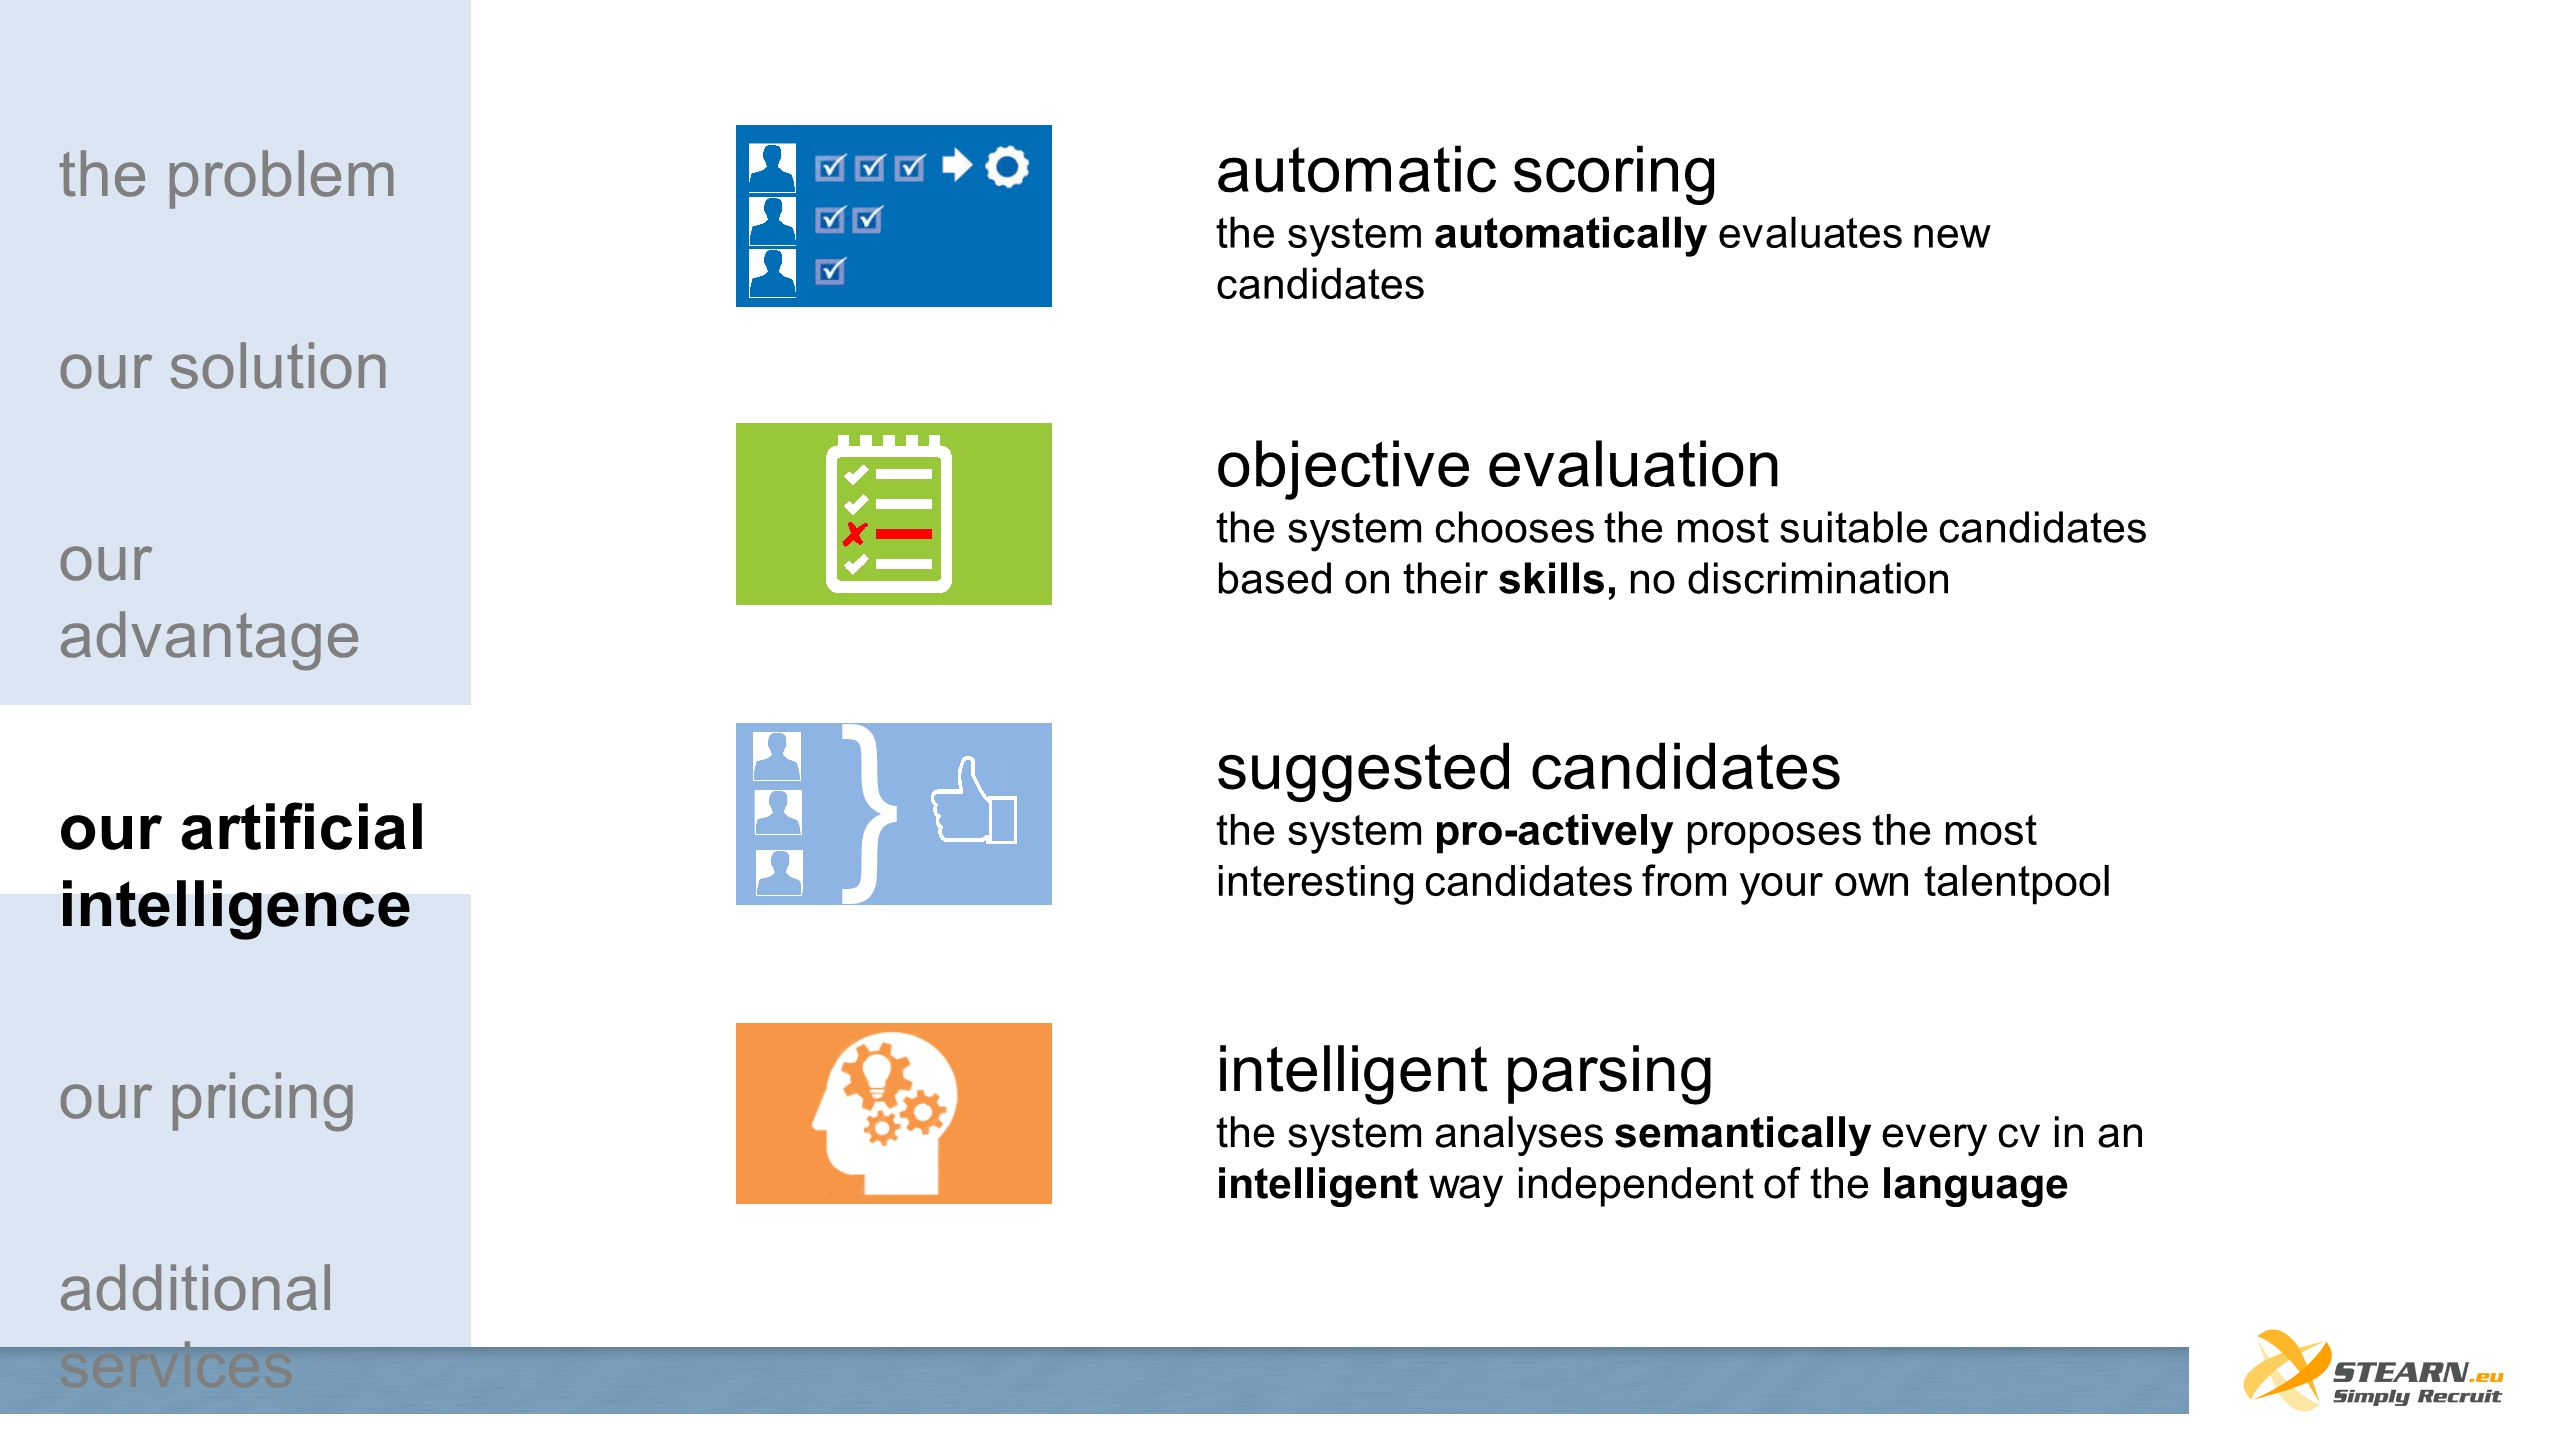 intelligent parsing the system analyses semantically every cv in an intelligent way independent of the language automatic scoring the system automatically evaluates new candidates objective evaluation the system chooses the most suitable candidates based on their skills, no discrimination suggested candidates the system pro-actively proposes the most interesting candidates from your own talentpool the problem our solution our advantage our artificial intelligence our pricing additional services